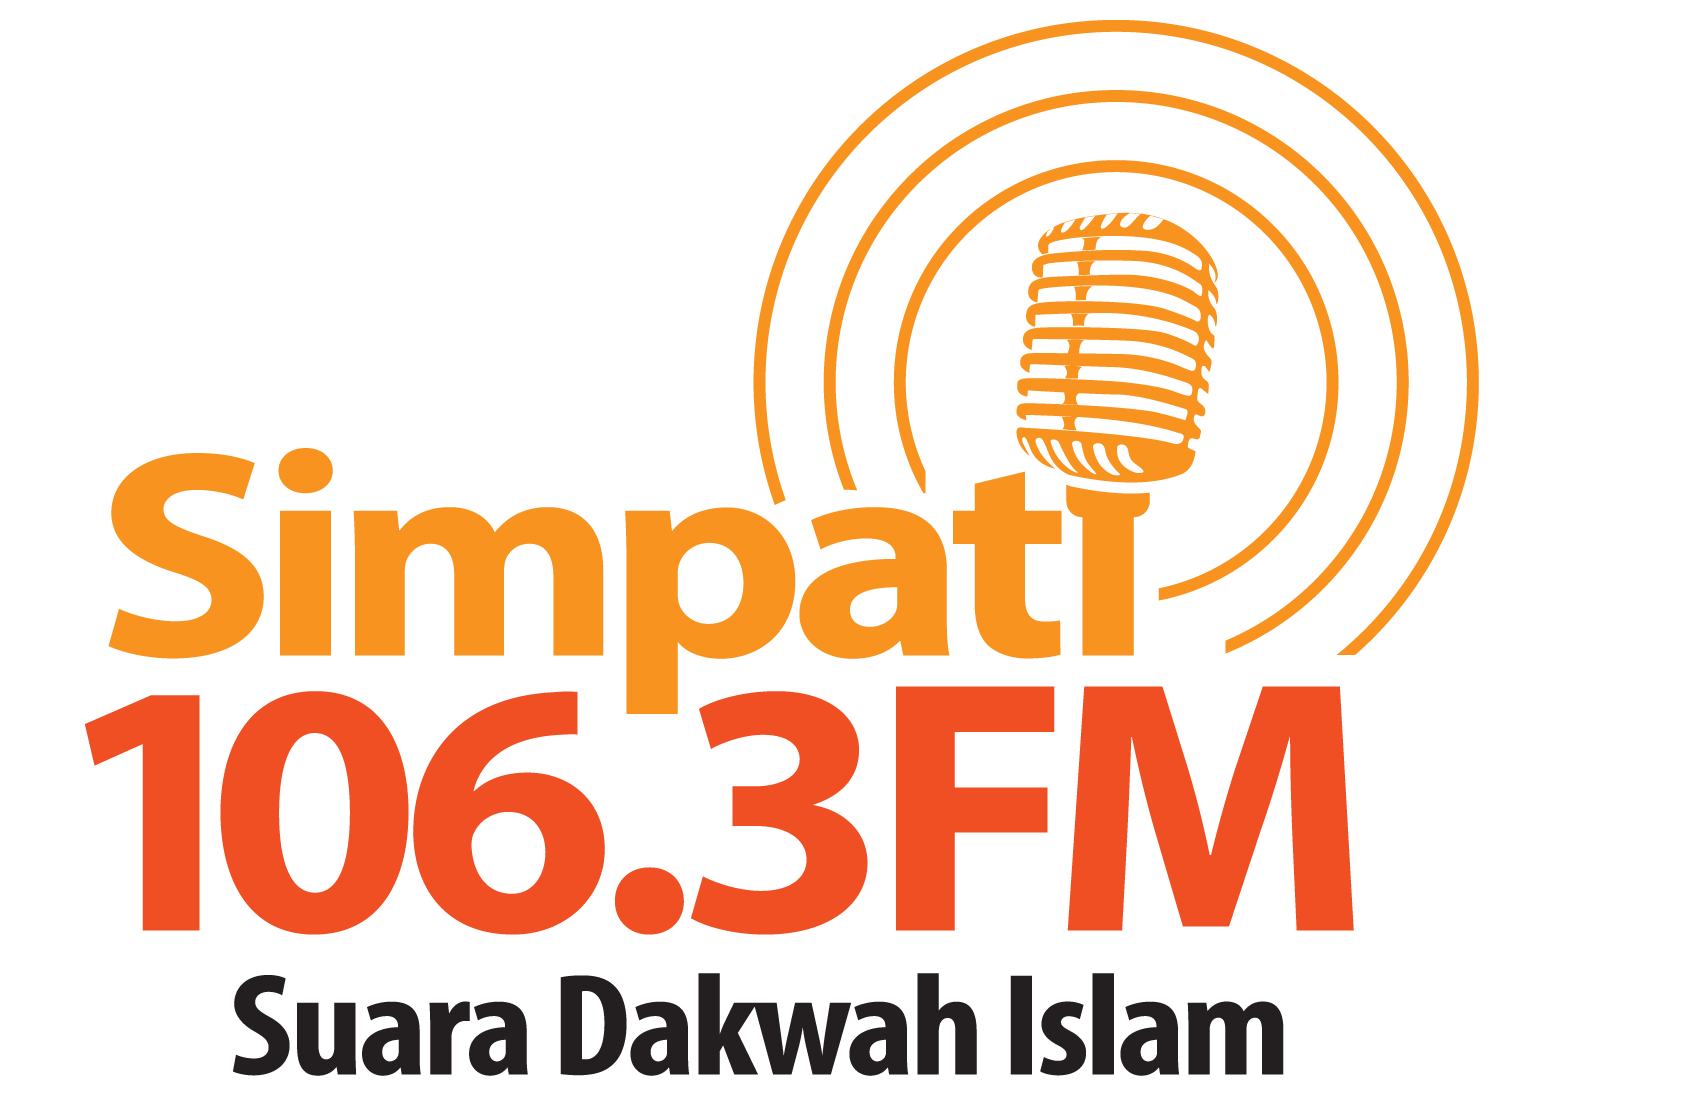 Radio SimpatiFM 106.3 MHz | Suara Dakwah Islam